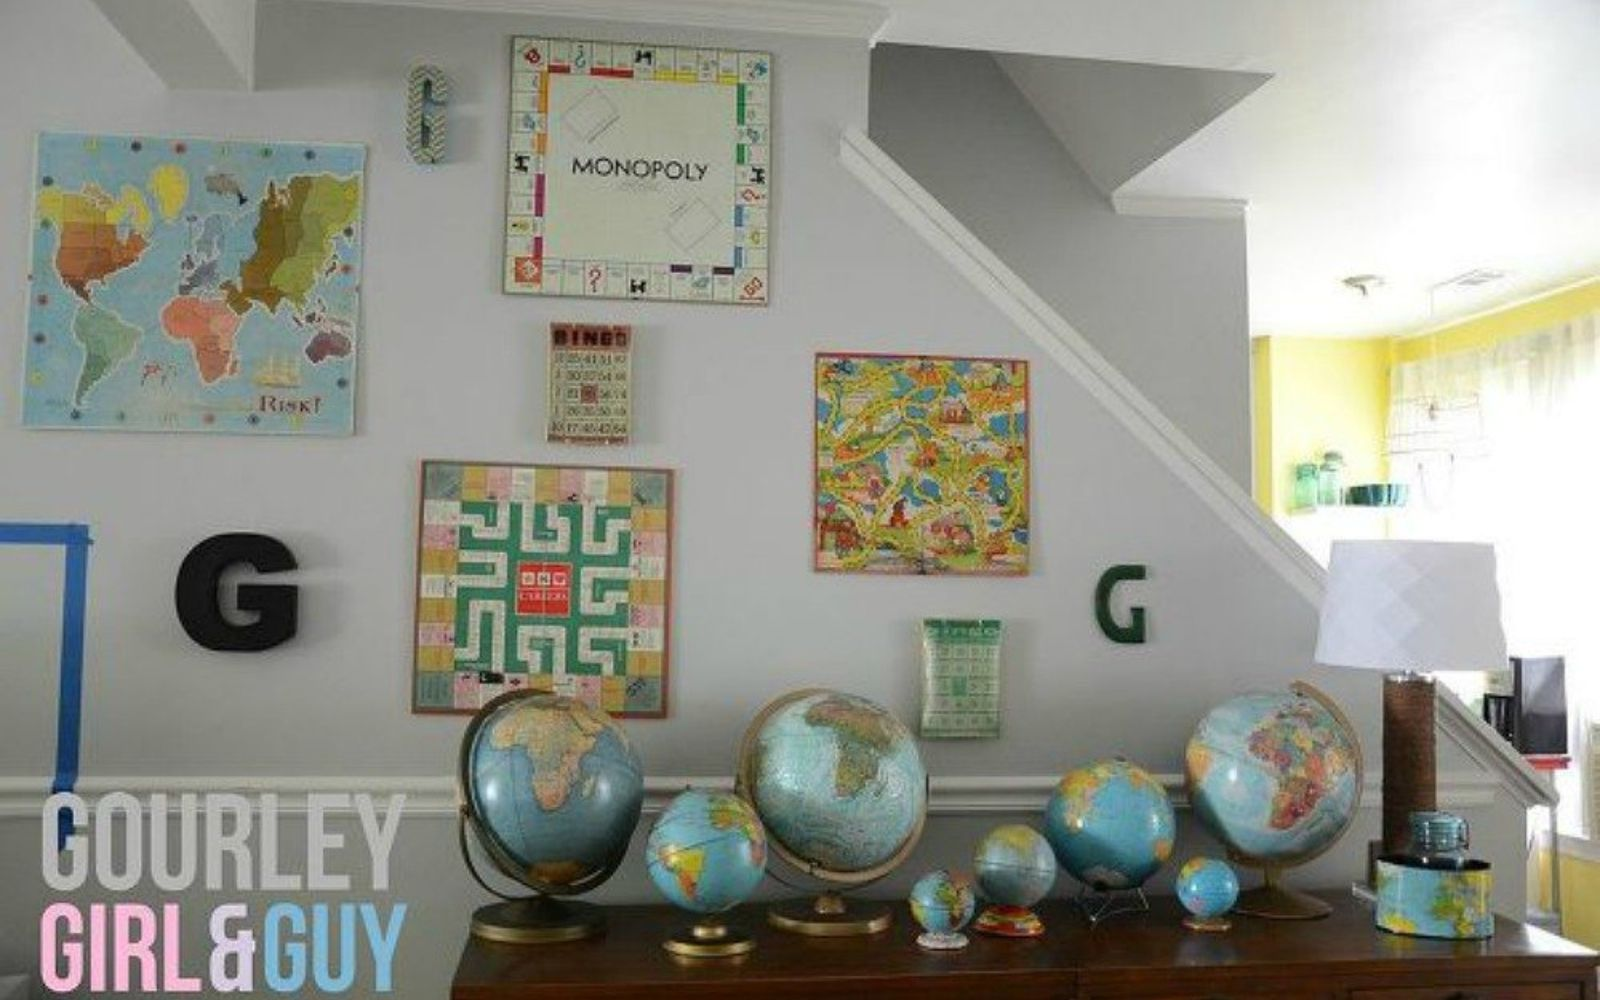 s 13 low budget ways to decorate your living room walls, go green, plumbing, Hang up your favorite board games